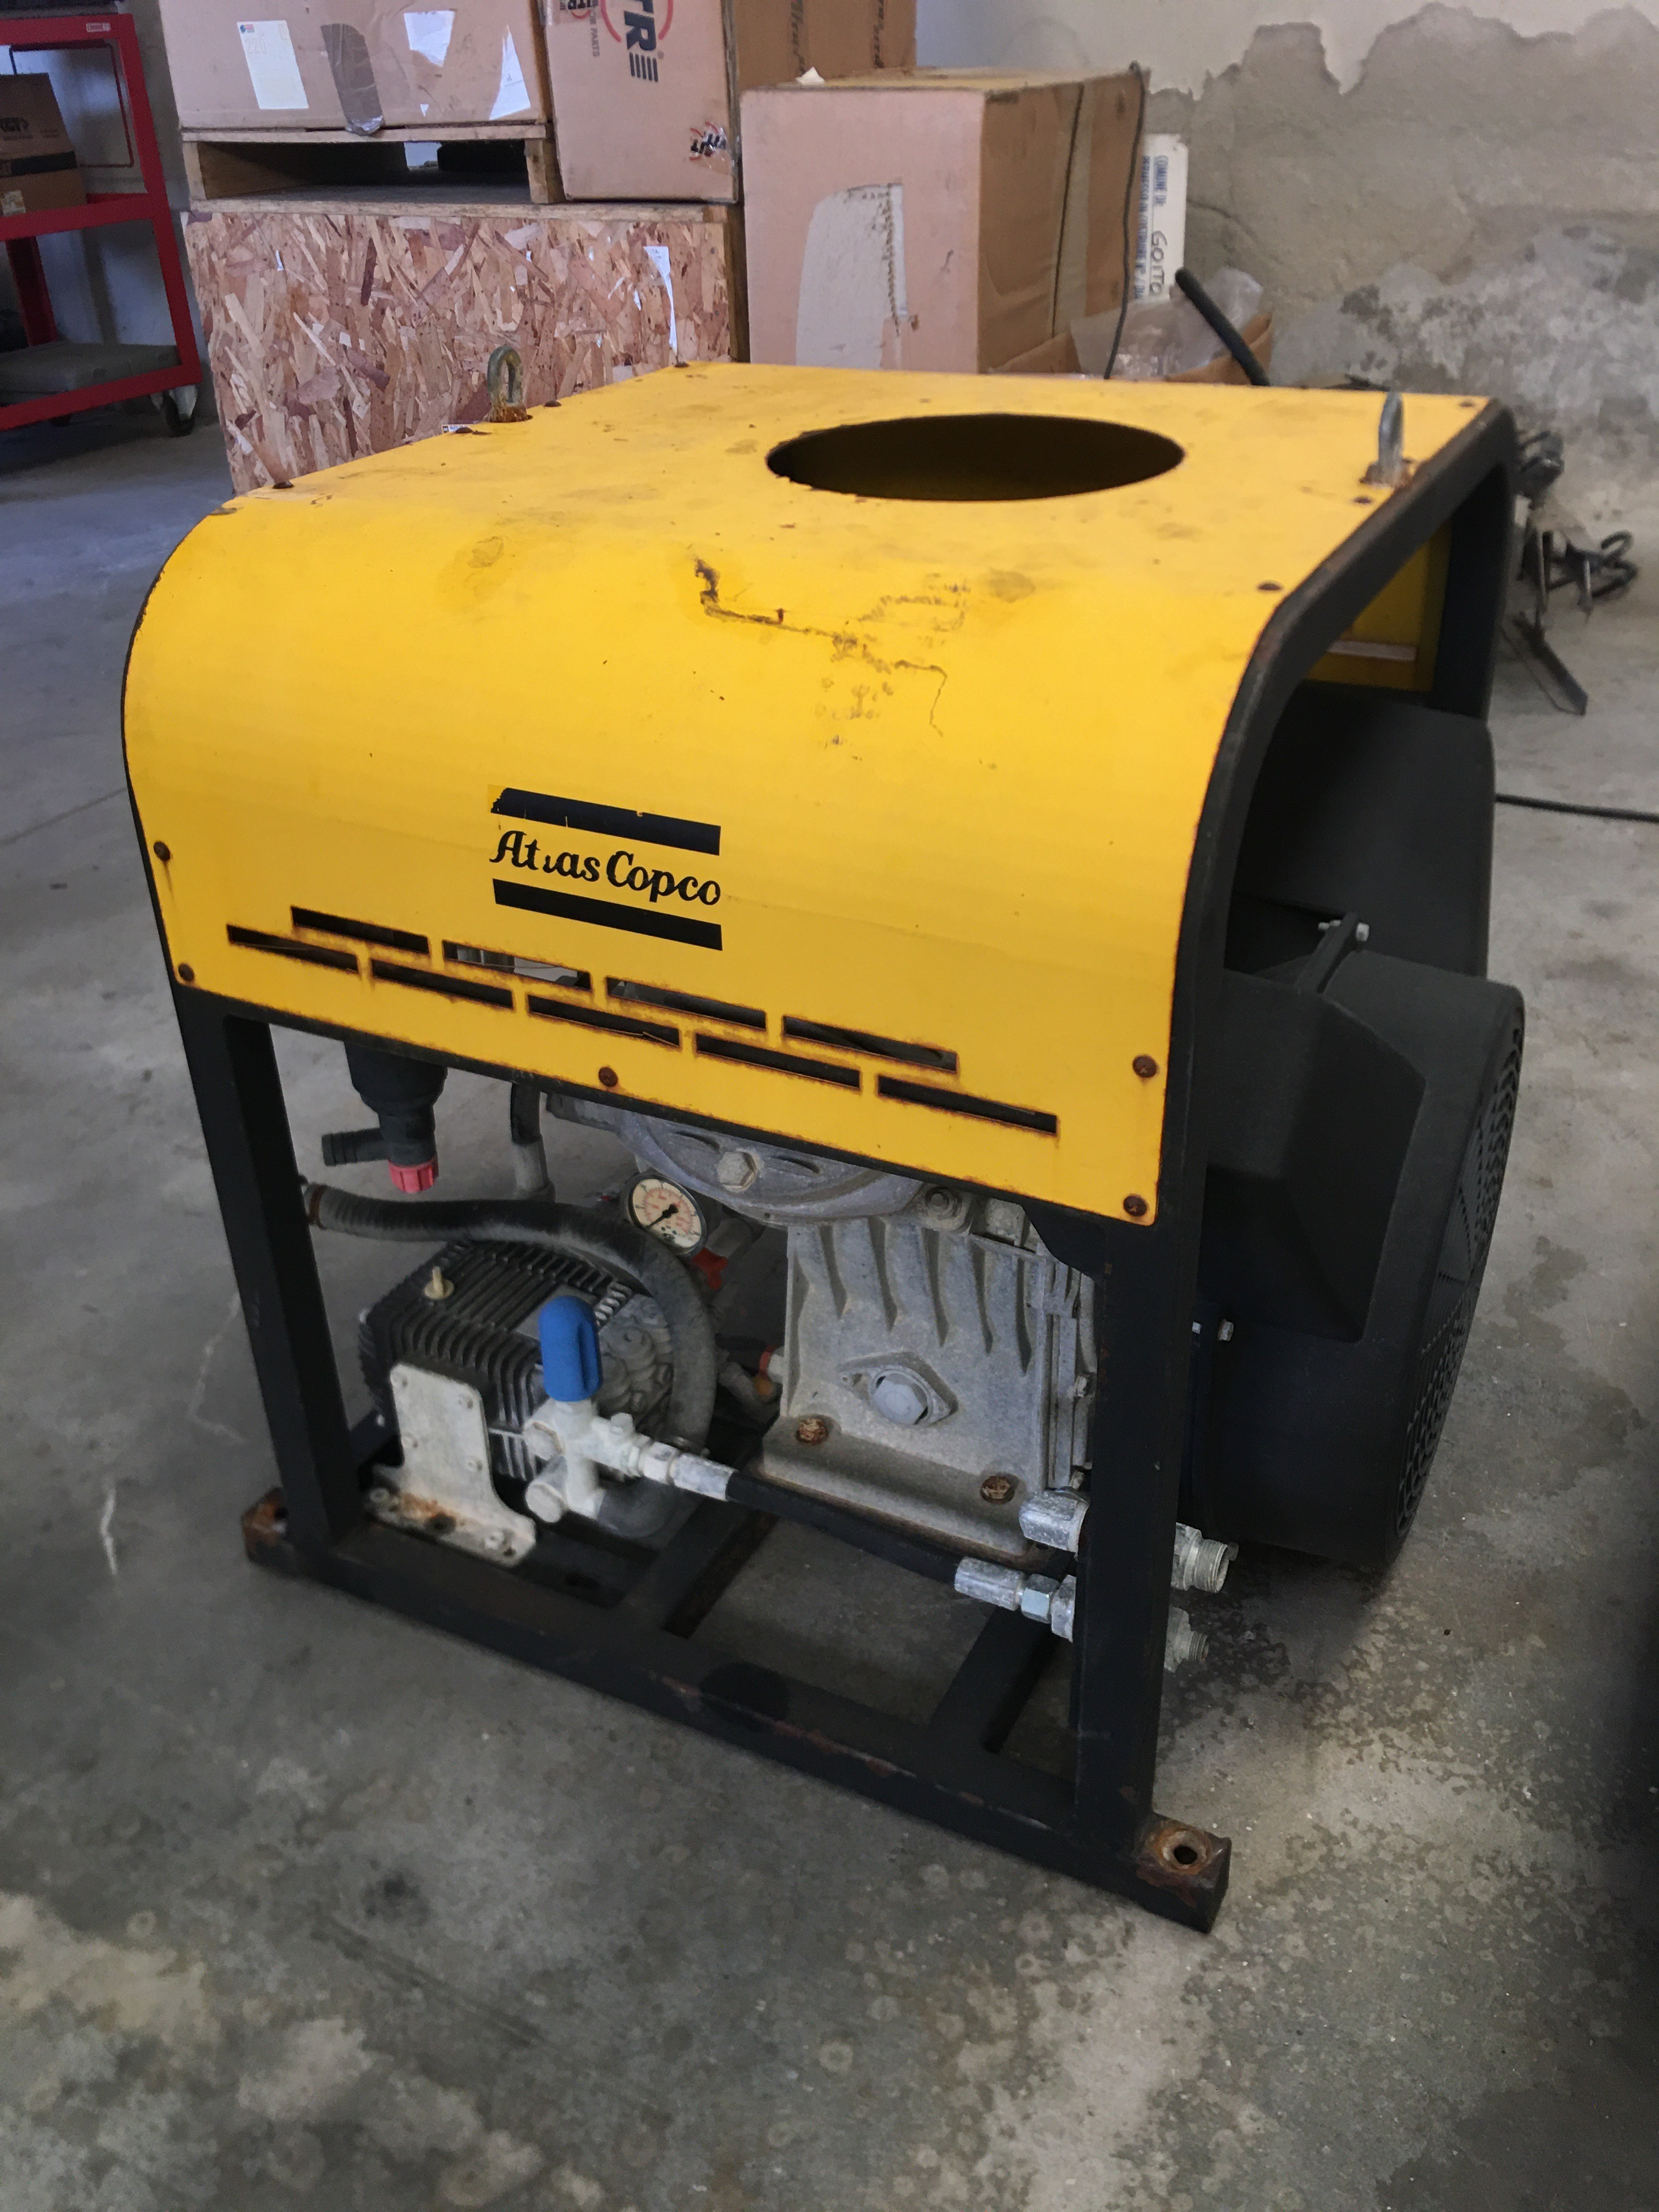 Hydraulic compressor Atlas